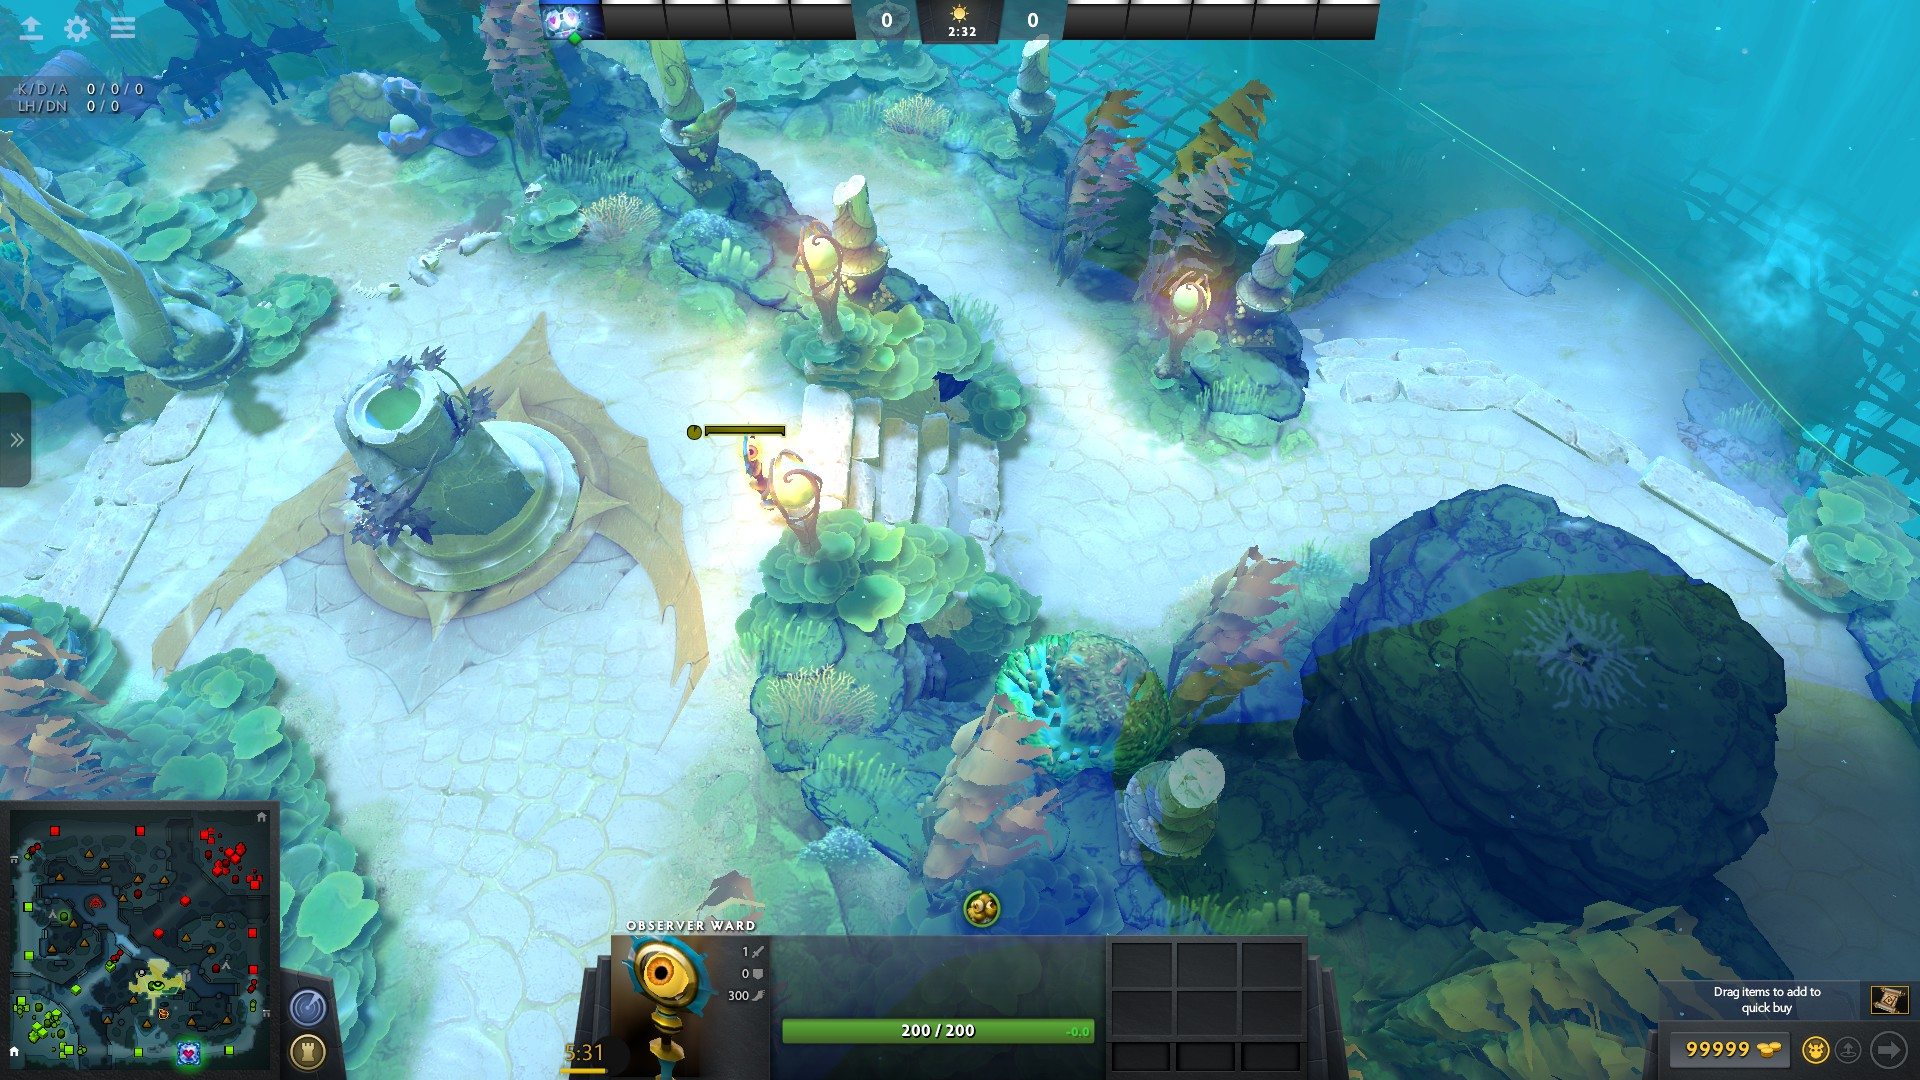 Example of a Shrine ward in Dota 2's 7.06 patch.